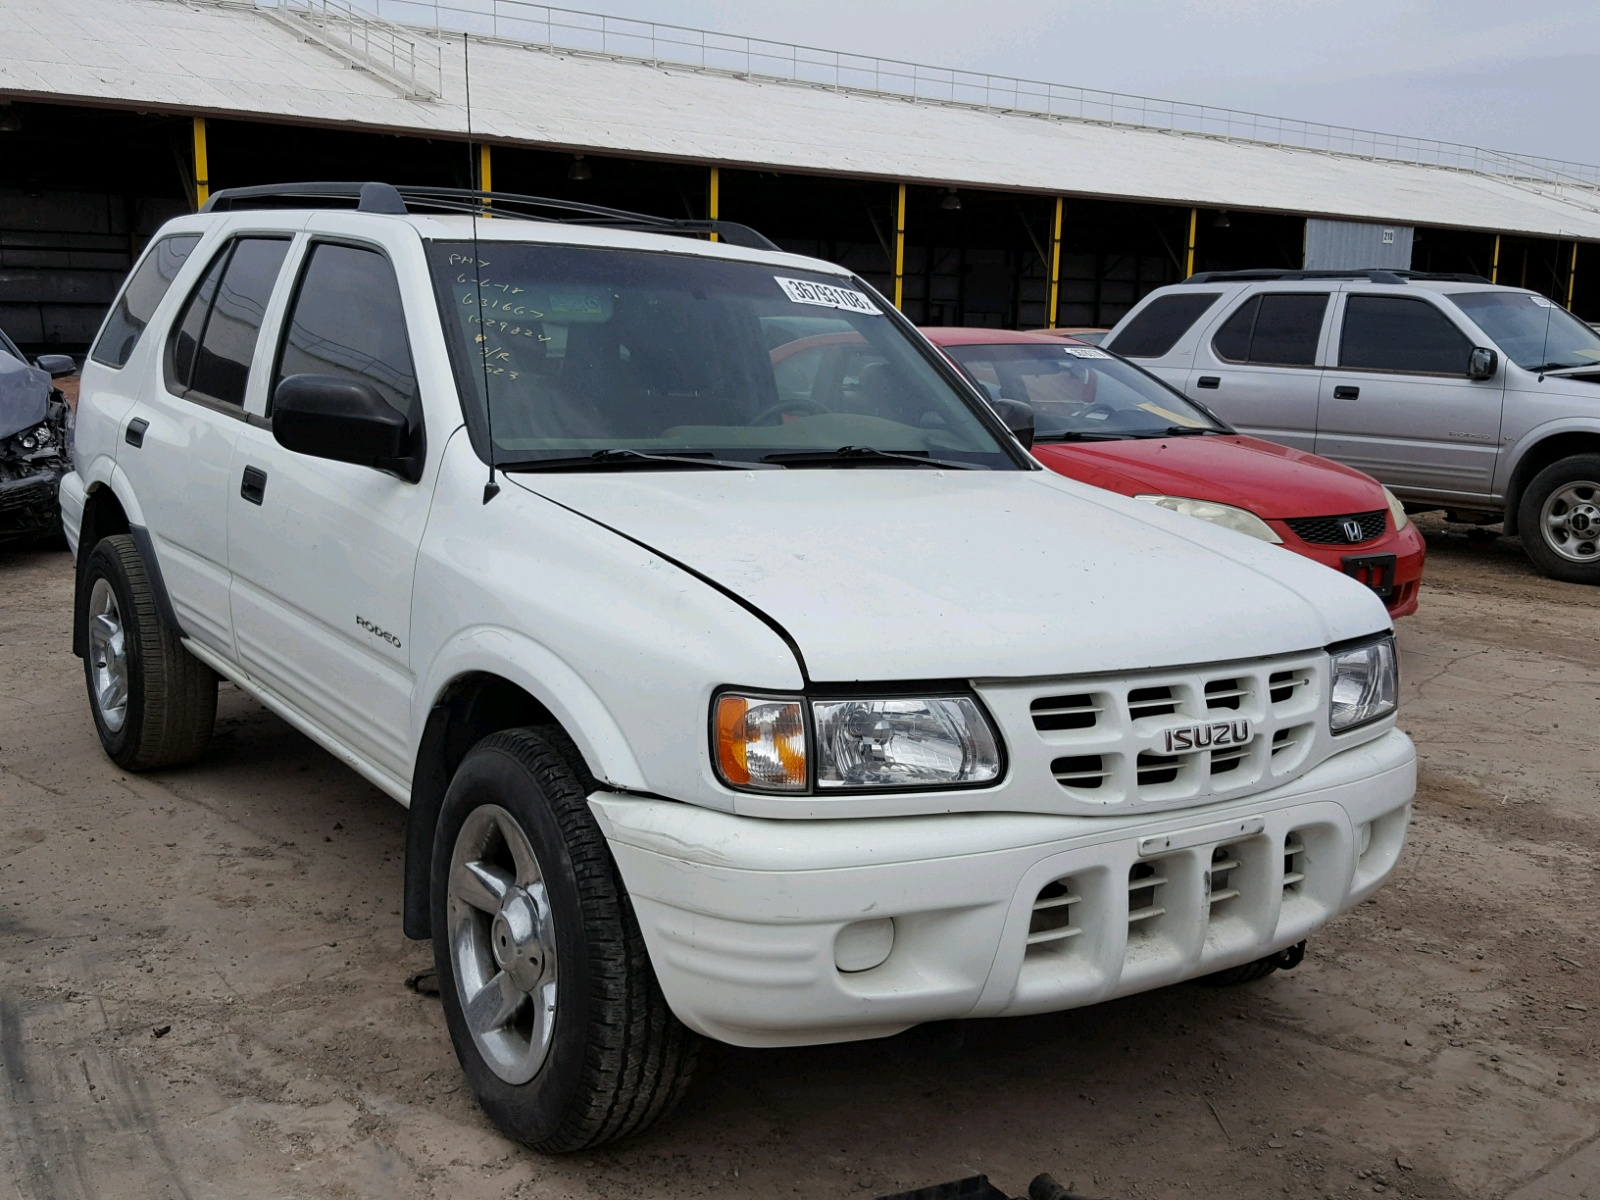 Salvage 2001 Isuzu RODEO S for sale